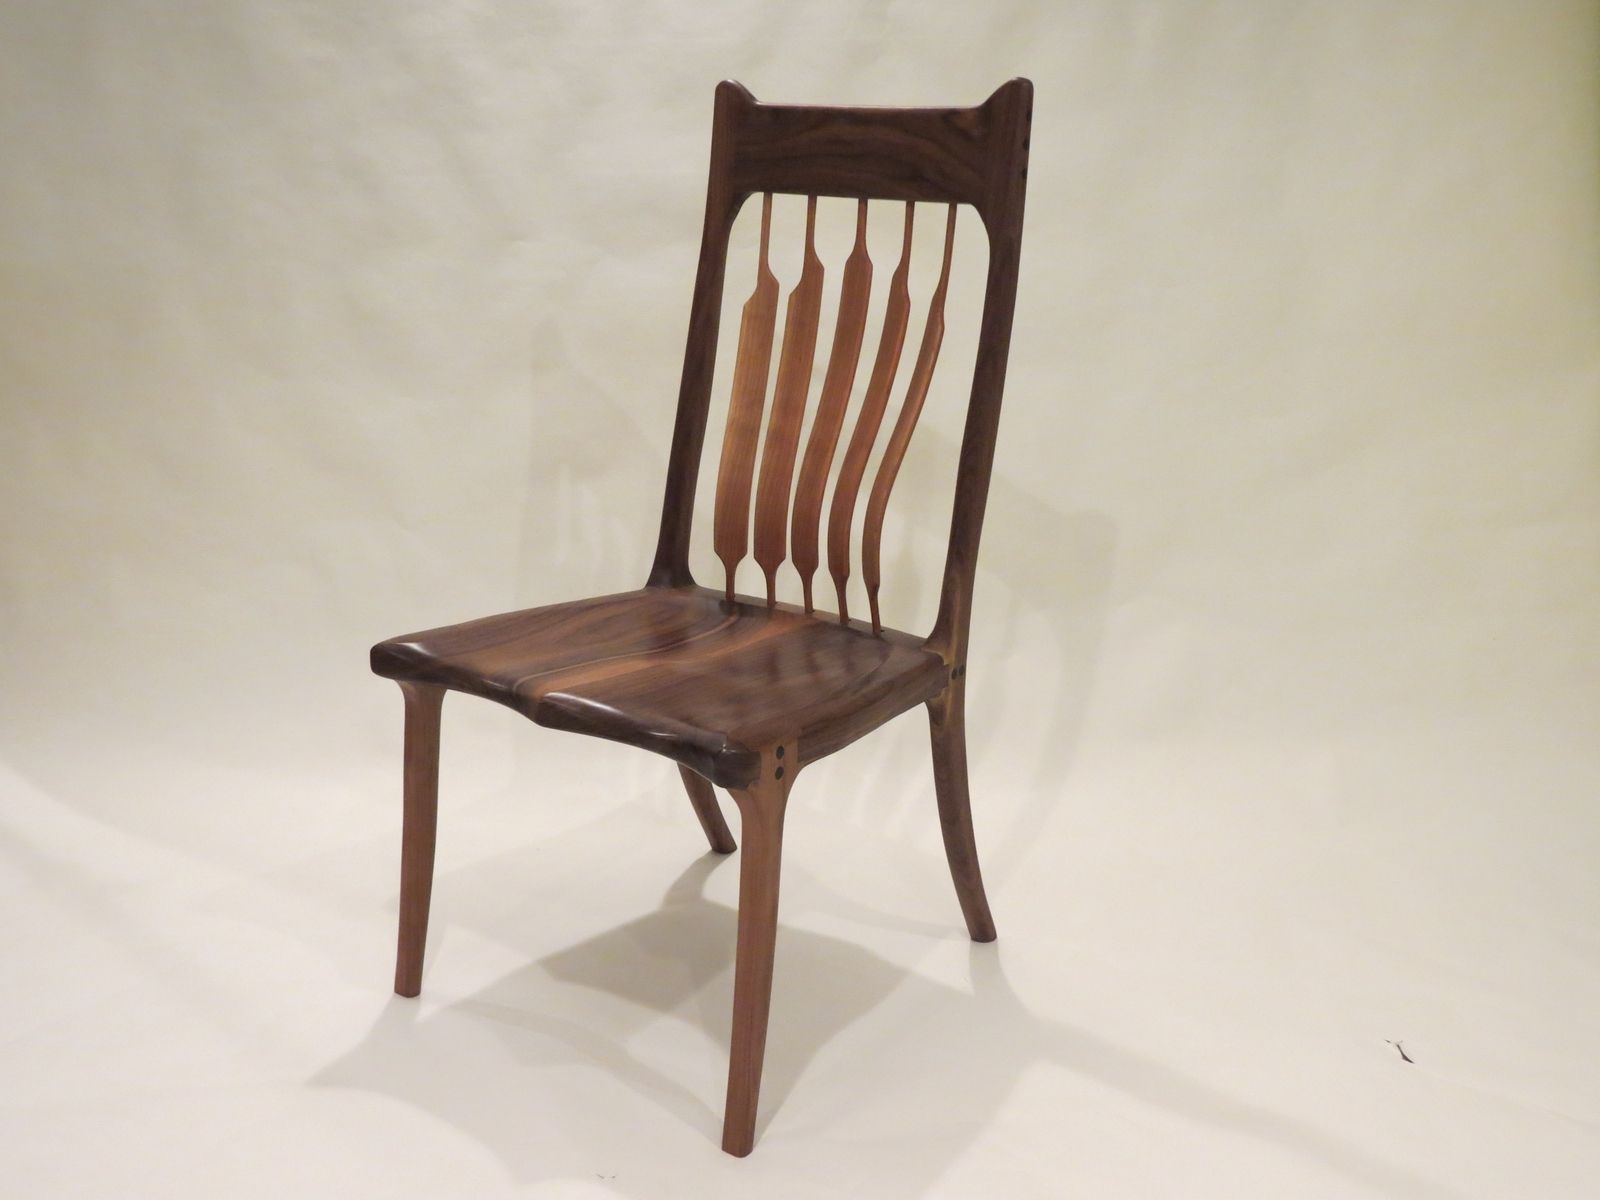 Buy a Custom High Back Dining Chair made to order from Lost Creek